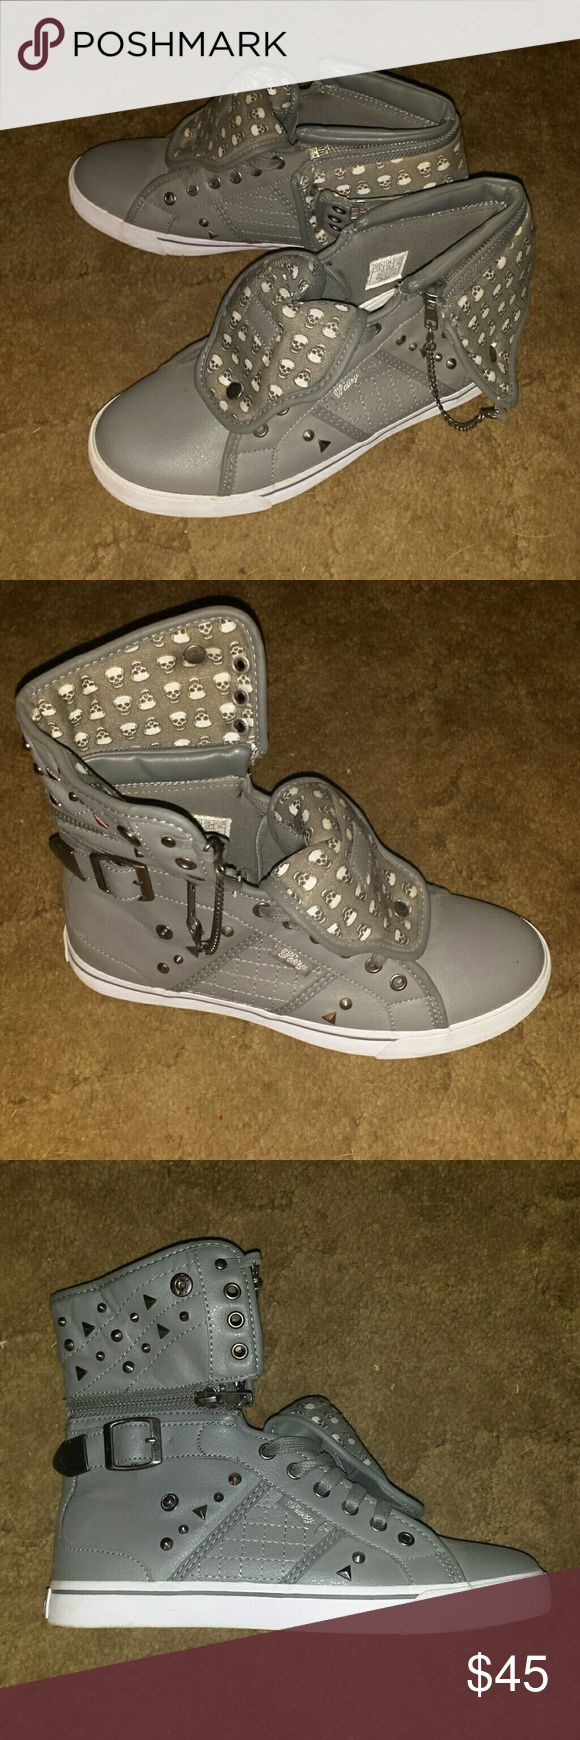 Pastry skull pattern shoes Grey with small white skulls. Has studs on the sides and a flap that can be flopped up or down or taken off and a long tounge that can be snapped down. Comes with grey and white shoe laces. Only worn once. Pastry Shoes Sneakers